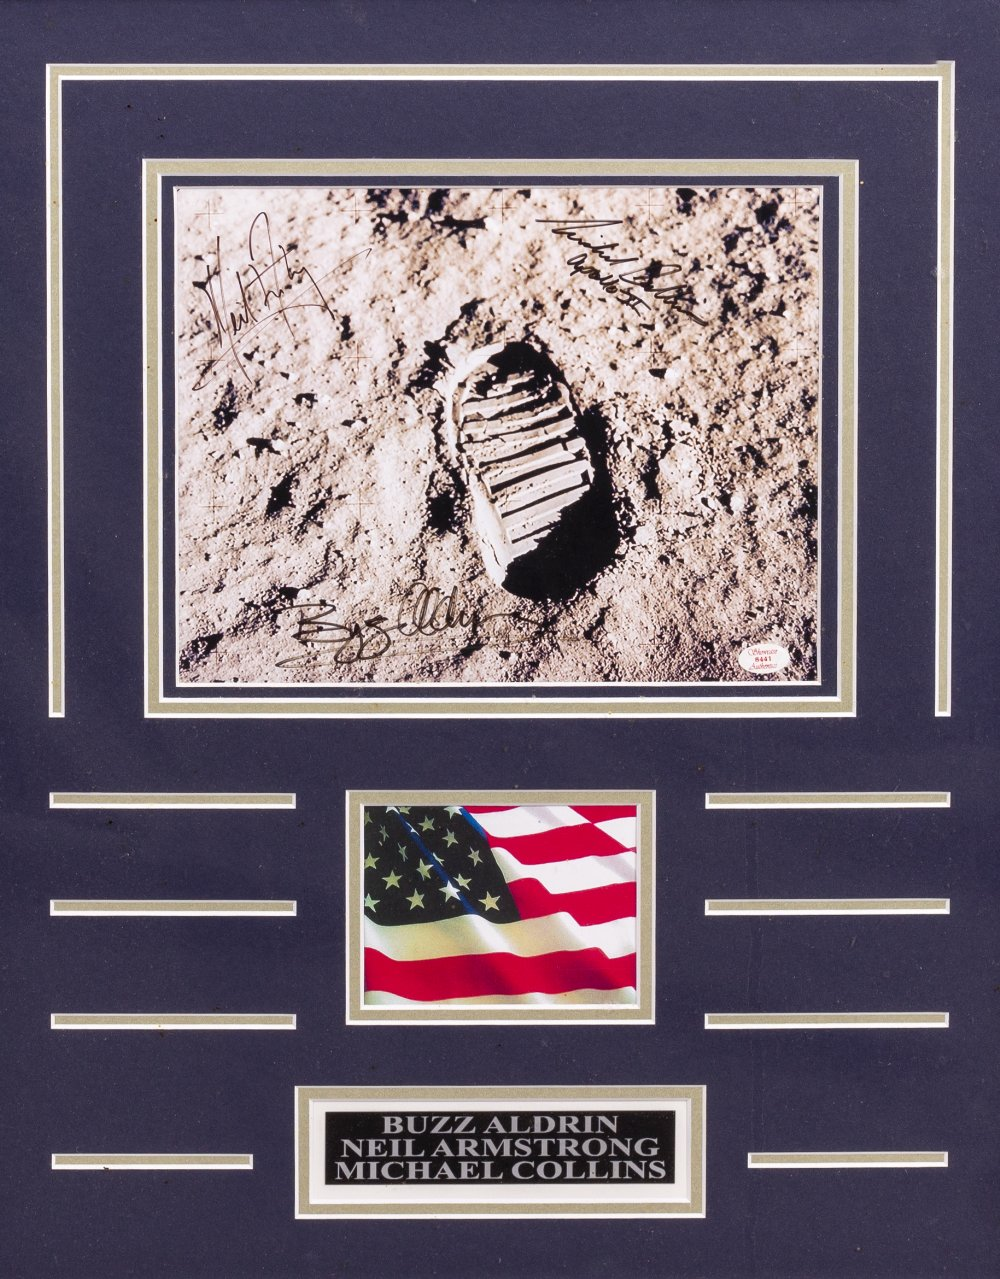 Lot 30 - BUZZ ALDRIN, NEIL ARMSTRONG, MICHAEL COLLINS SIGNATURES to an Apollo 11 'lunar footprint' photo,